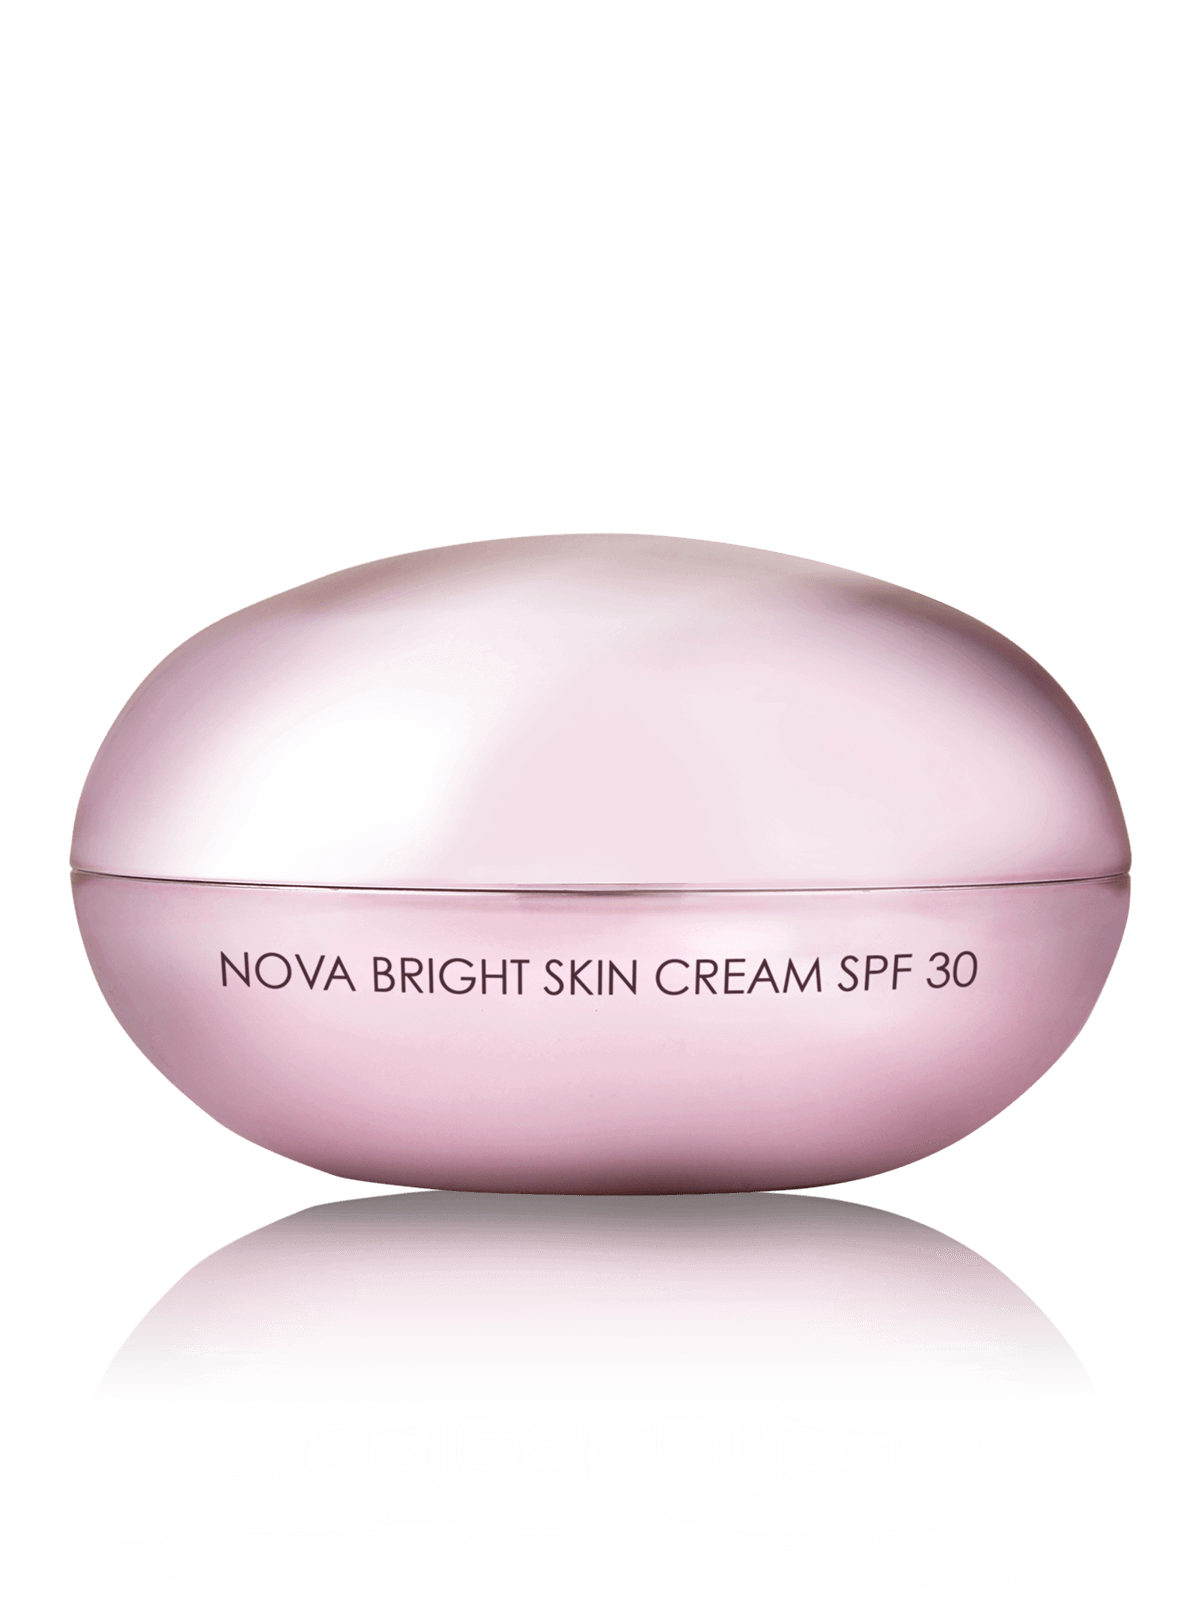 Nova Bright Skin Cream back